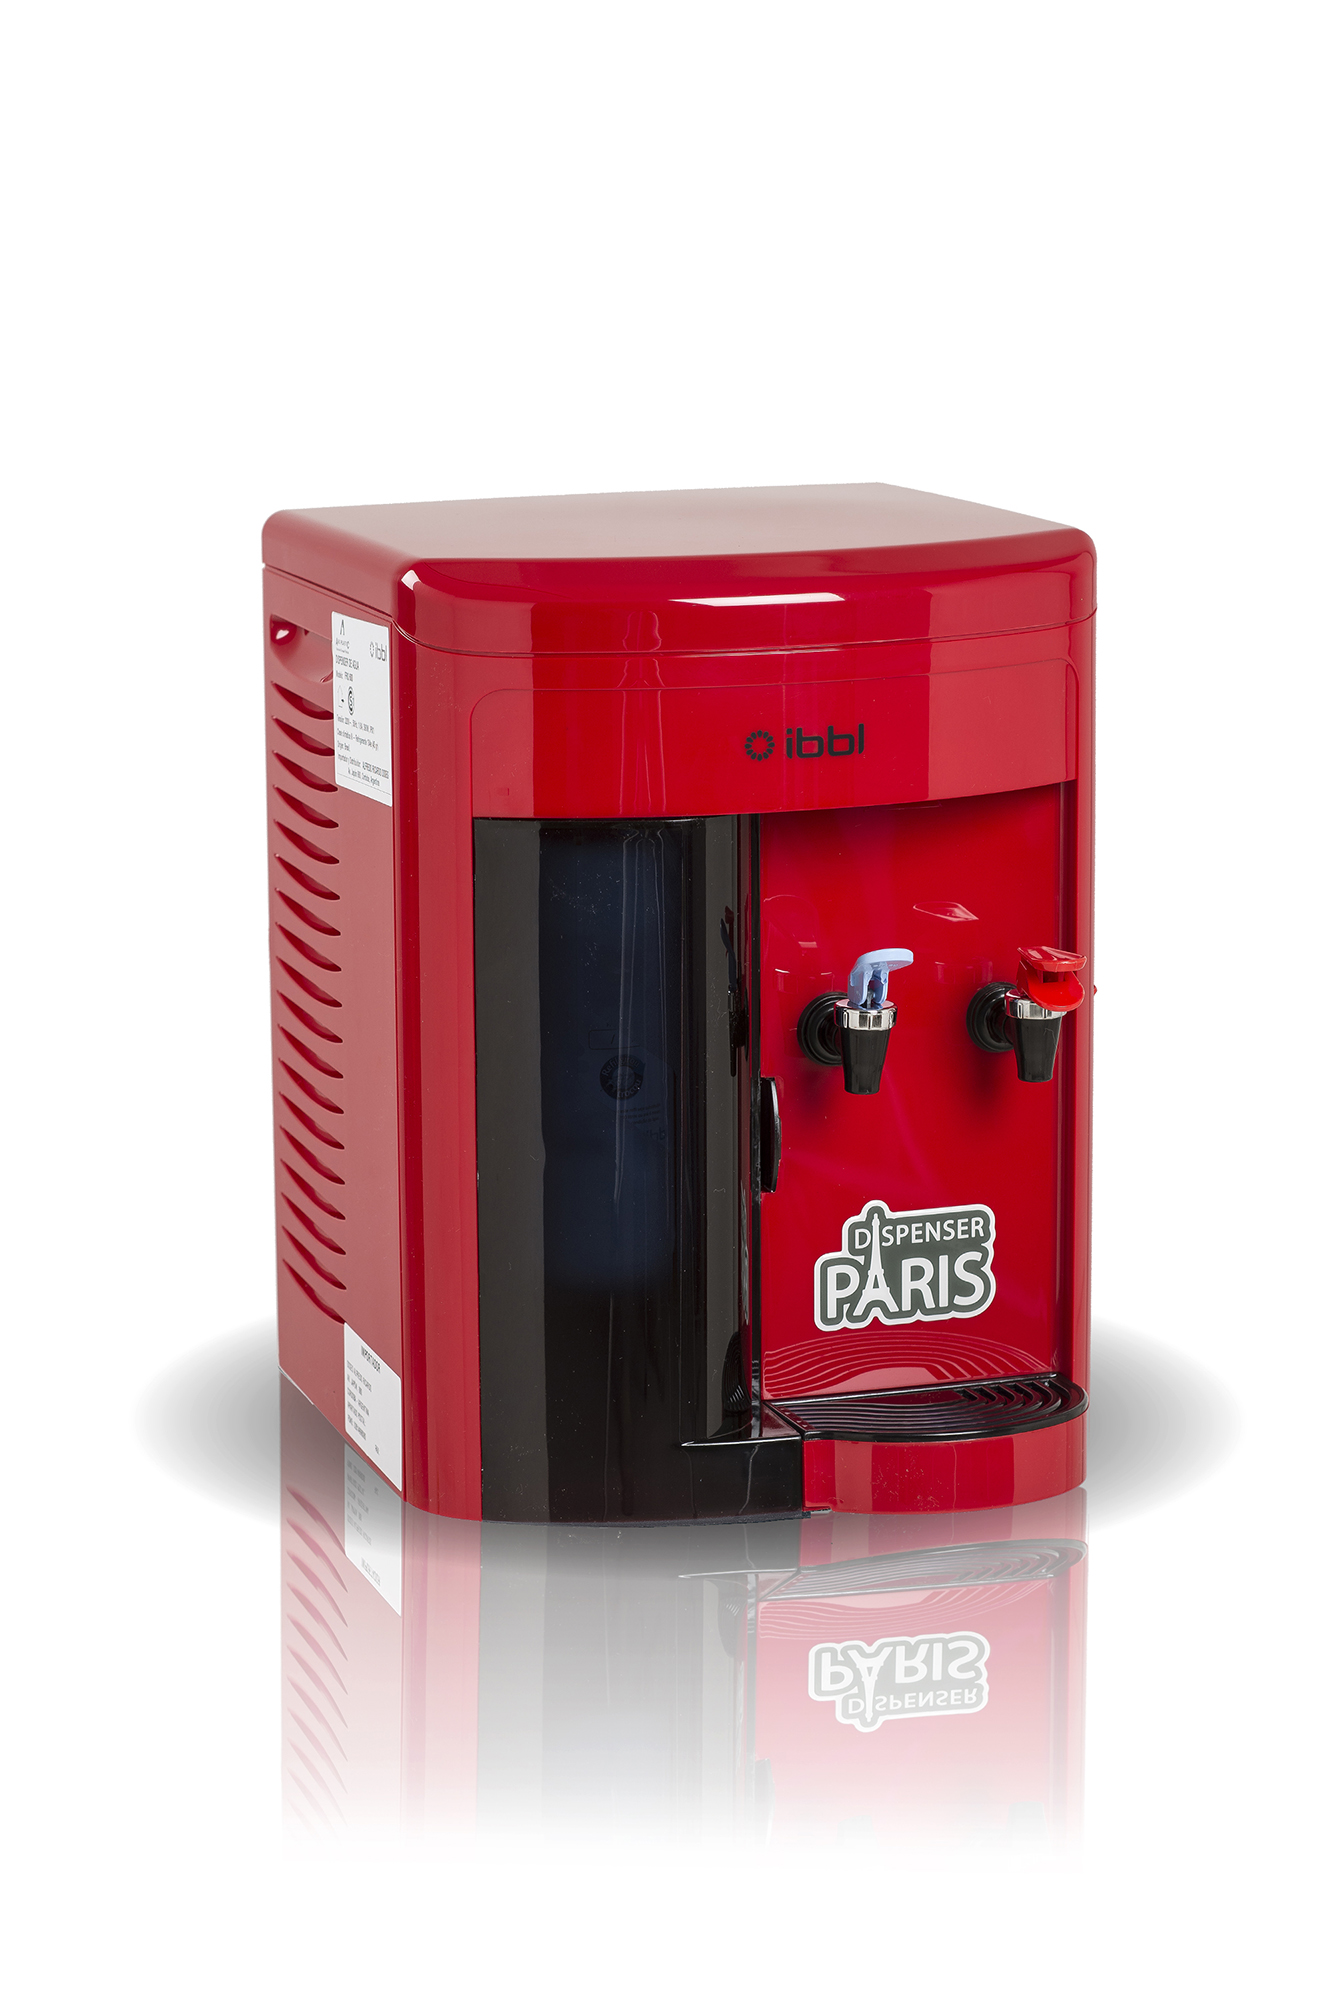 DISPENSER F/C IBBL FRQ 600 ROJO DE MESADA A RED